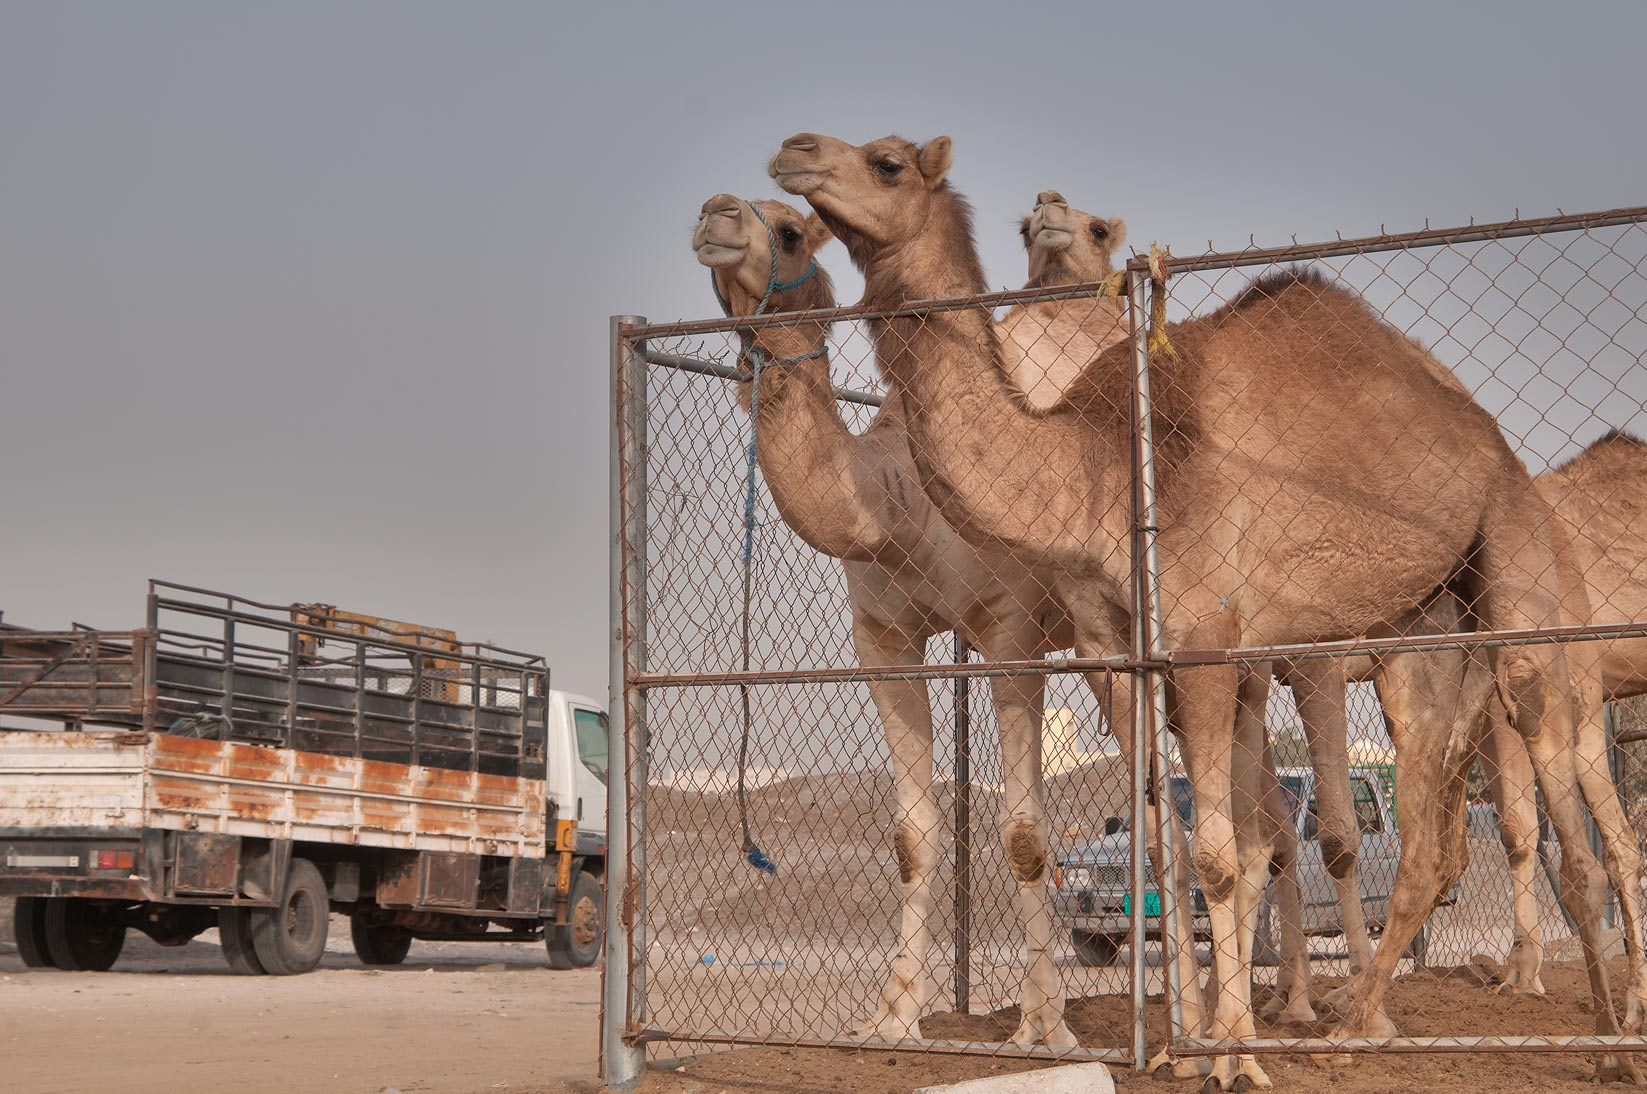 Camels in Wholesale Animal Market. Doha, Qatar